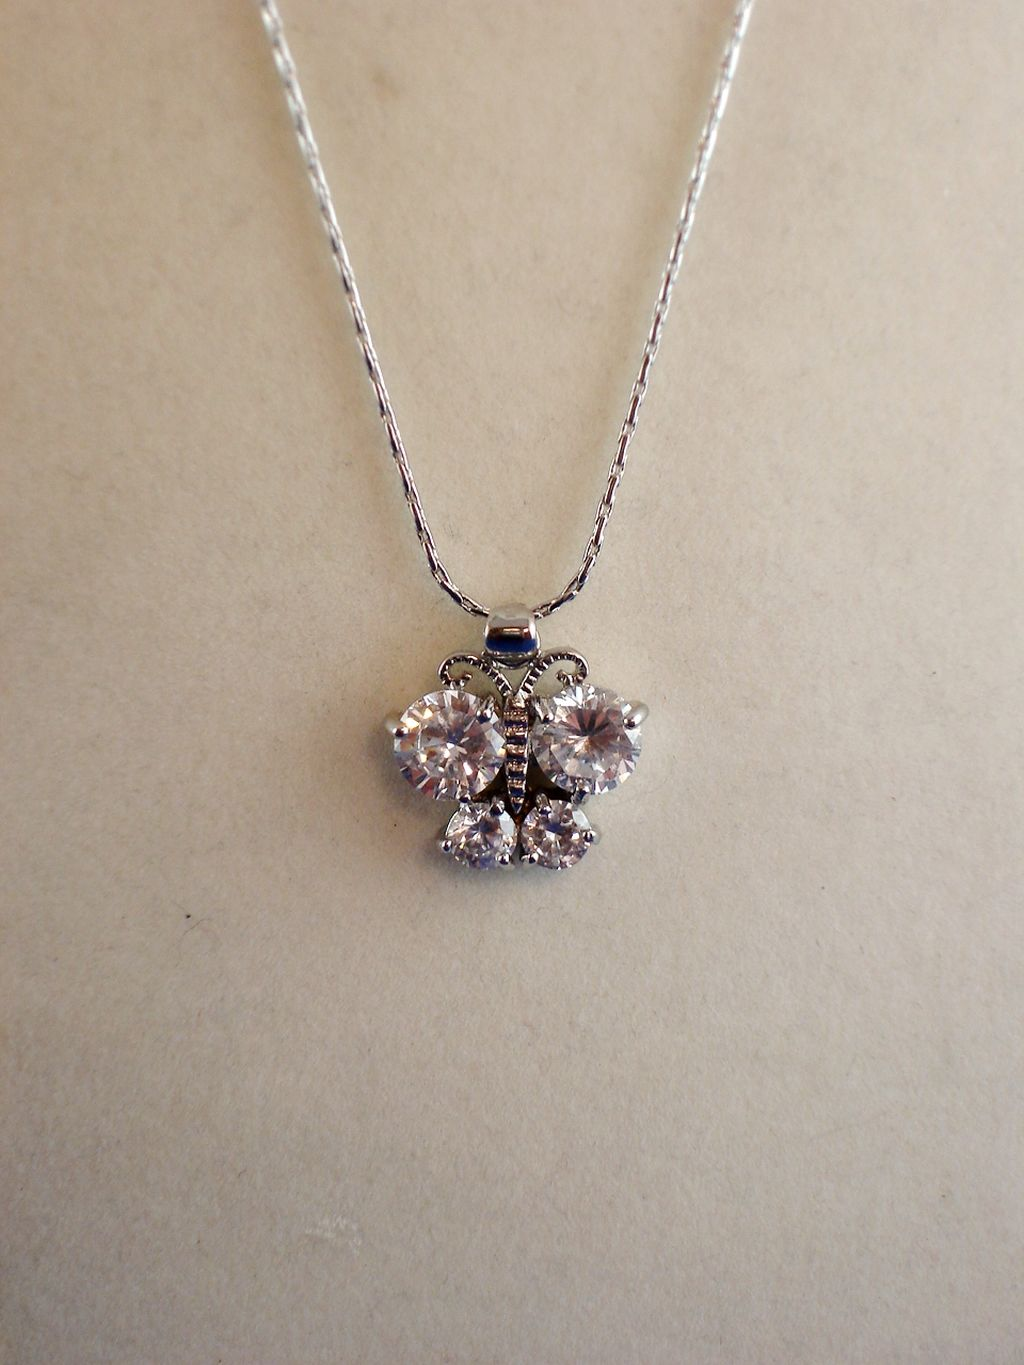 "Clear Cubic Zirconia Butterfly NeckLace, CZ Crystals, Sterling Silver Plated 16"" Chain, Anti-allergic Jewelry"